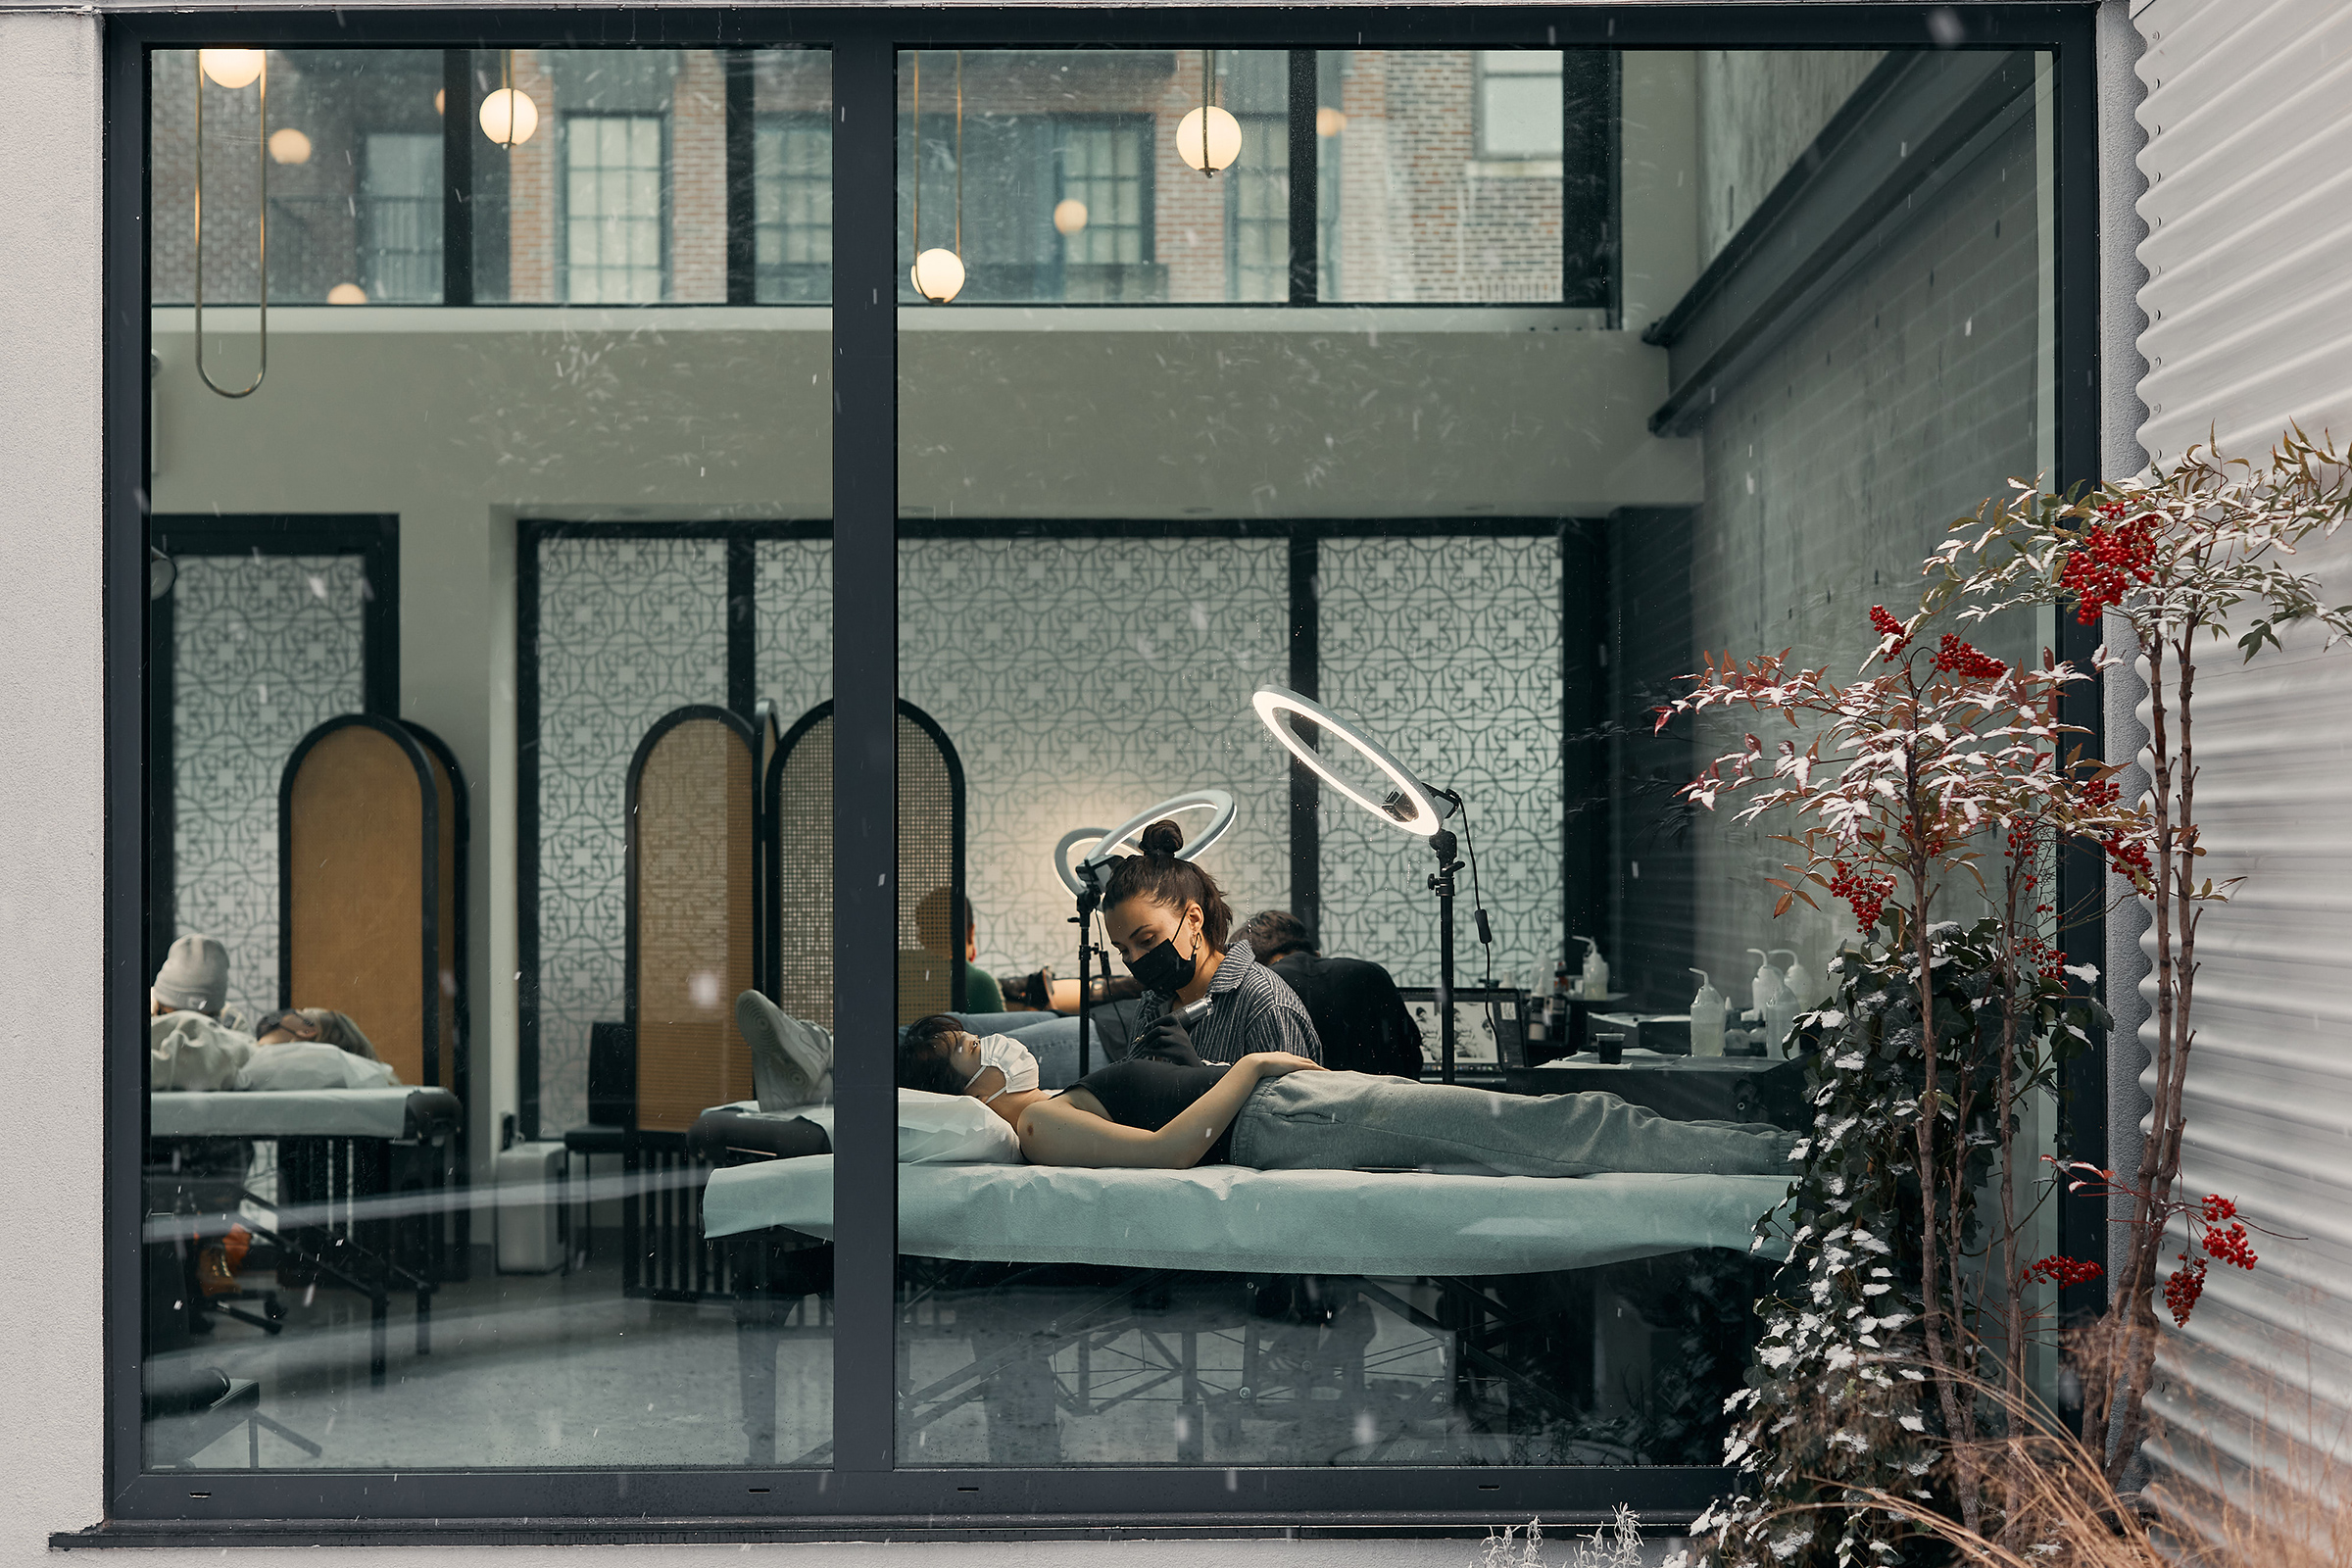 Atelier Eva, a tattoo studio in Brooklyn. Co-founders Peter Jenkins and Eva Karabudak say clients have been leaning into the zen aspects of the tattoo process during the pandemic.